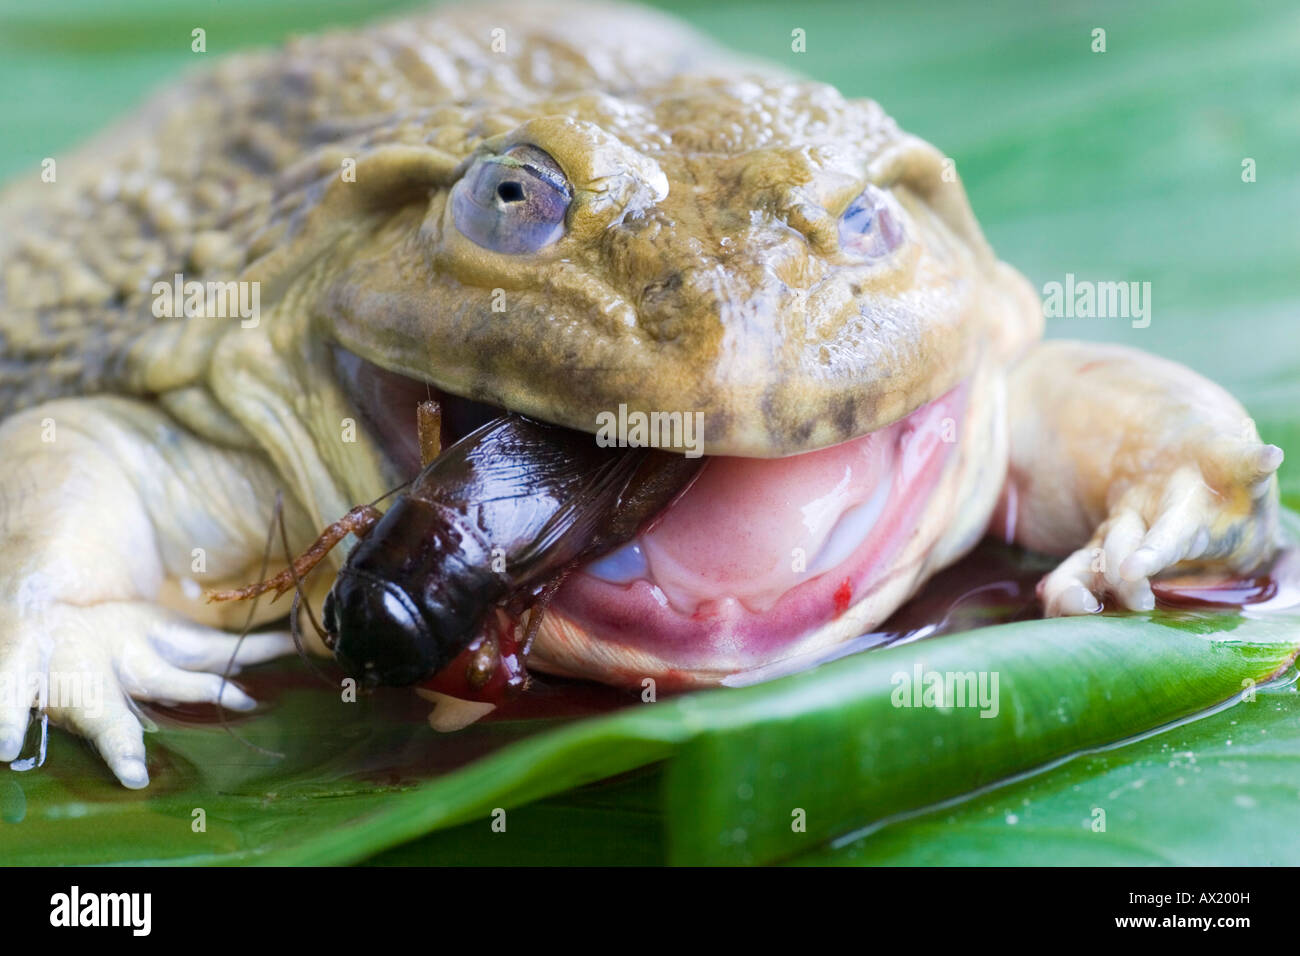 Toad (Bufonidae) eating a cricket (Gryllidae) - Stock Image